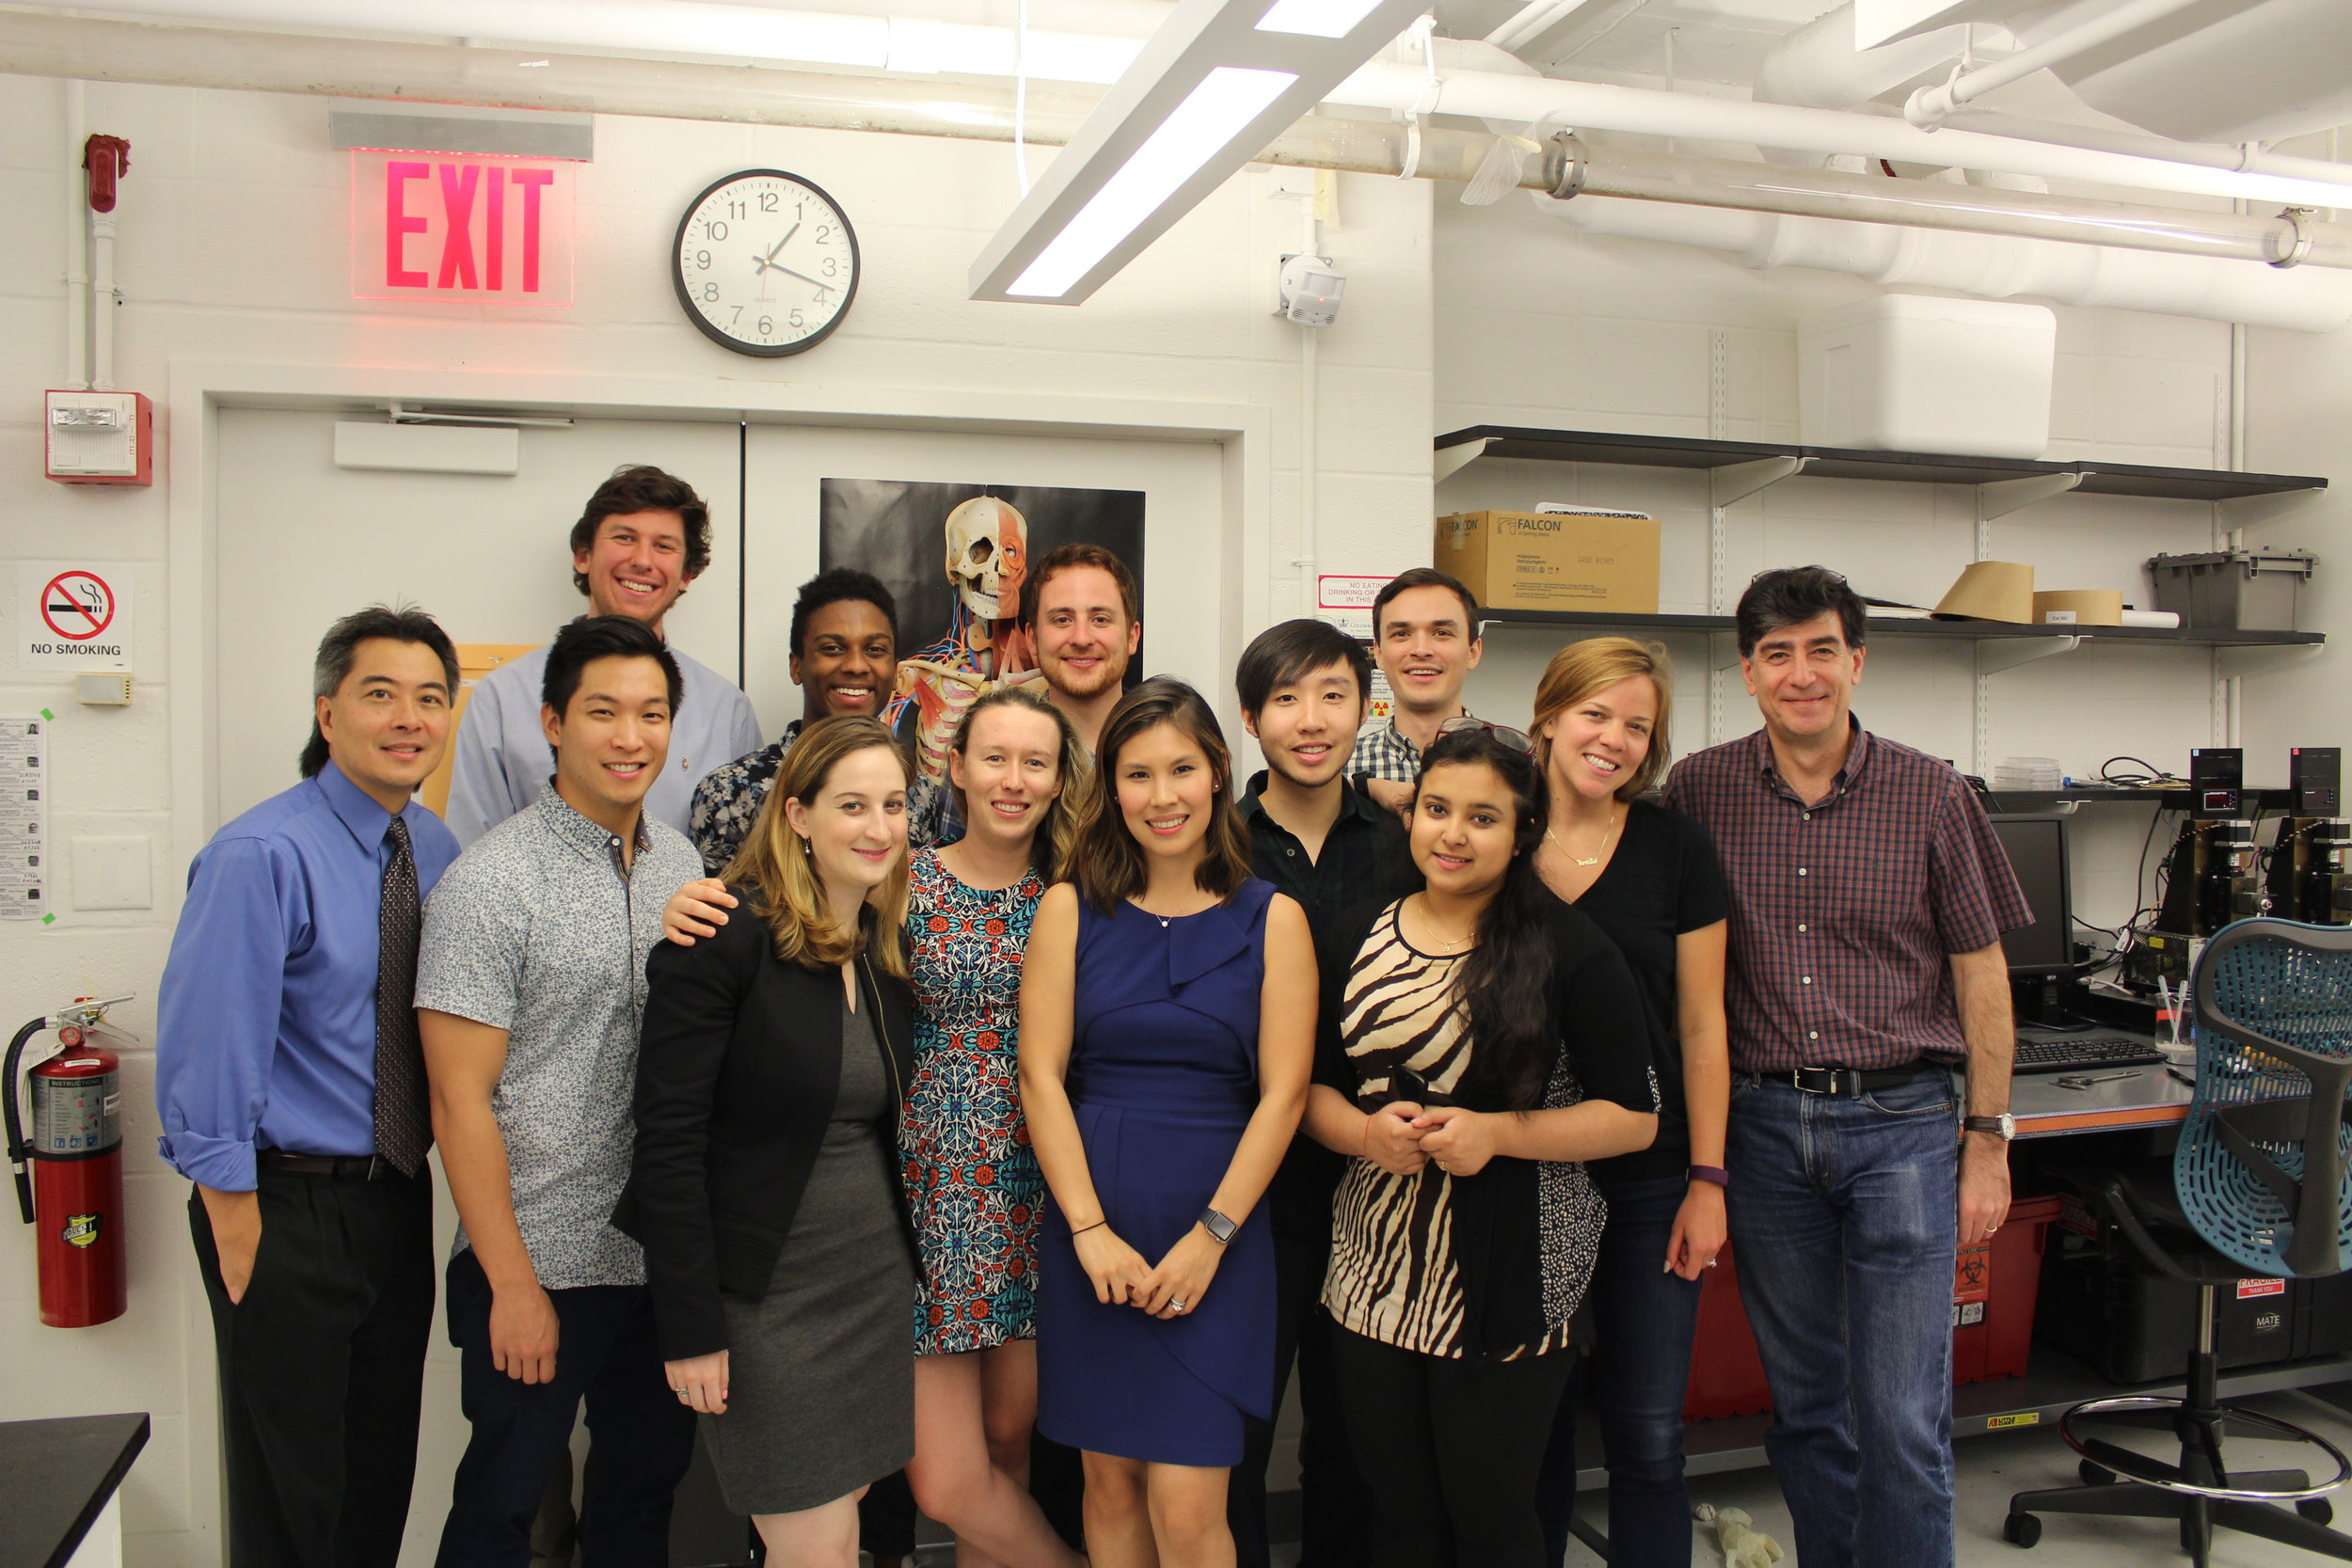 CEL lab members celebrating Amy's defense (left to right): Clark Hung, Charlie Cai, Colden Lyons, Lance Murphy, Amy Silverstein, Evie Sobczak, Rob Stefani, Andrea Tan, Will Yu, Eben Estell, Saiti Holder, Krista Durney, Gerard Ateshian